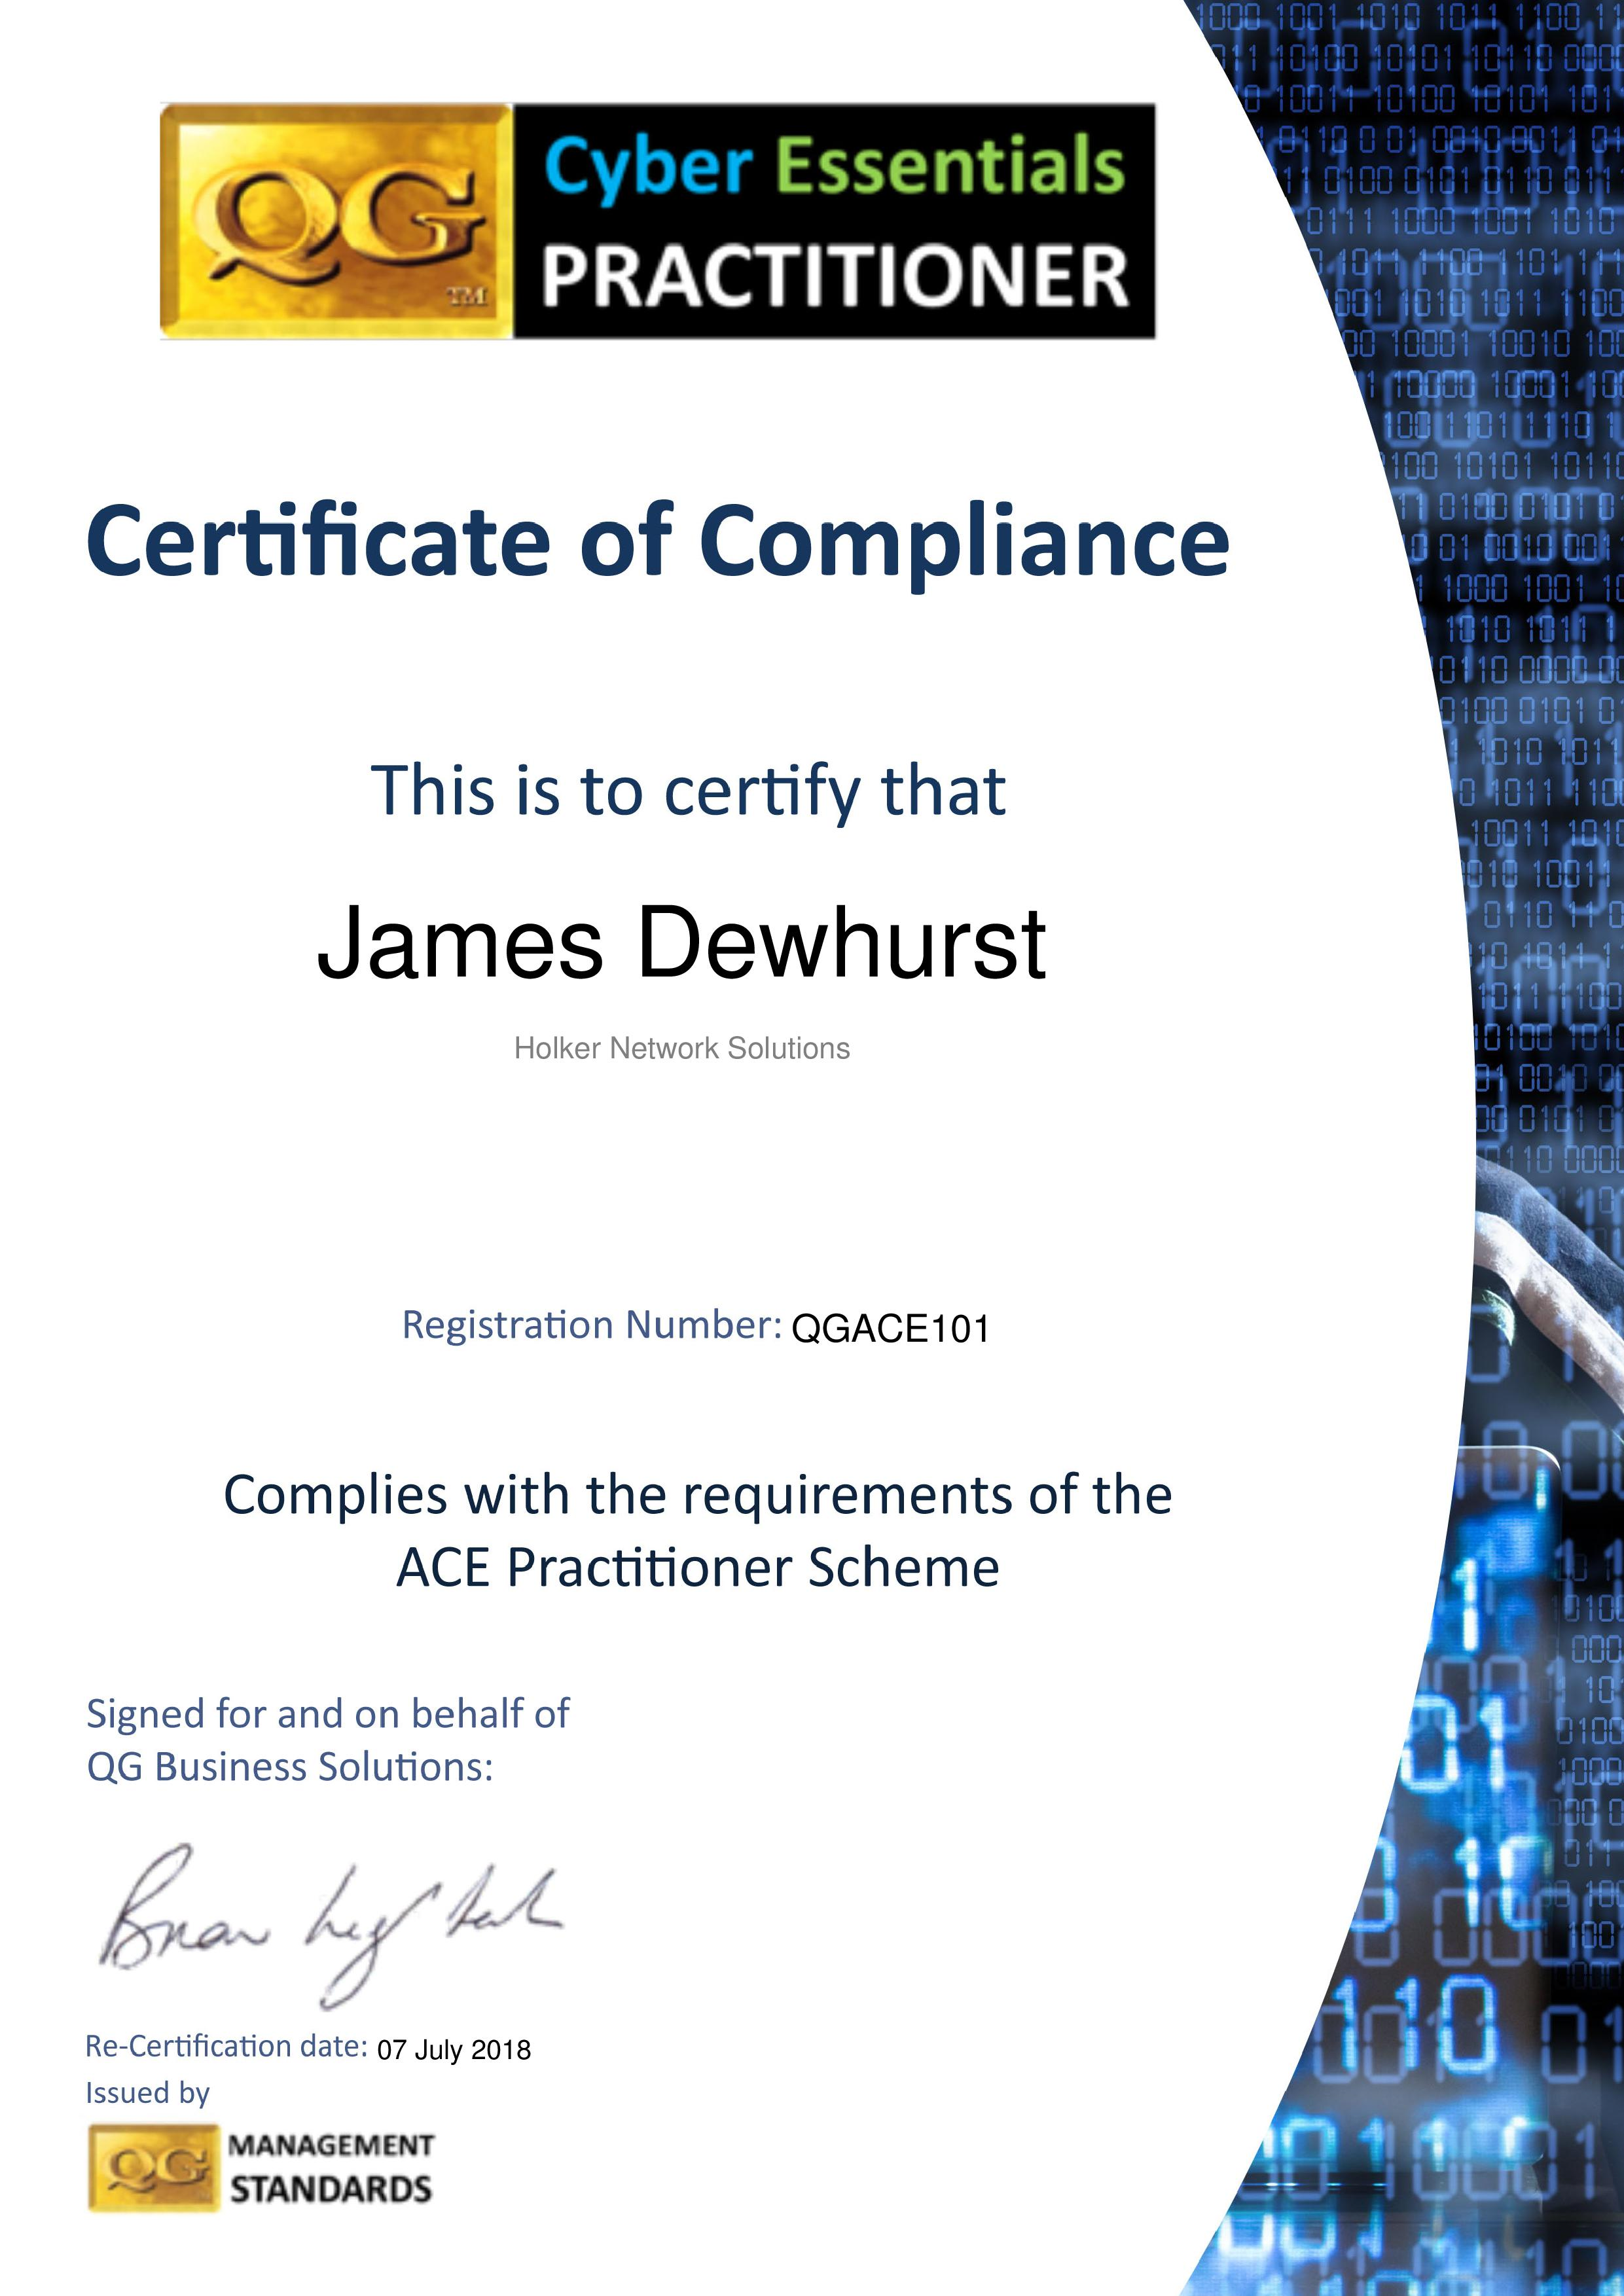 QGACE101 Holker Network Solutions